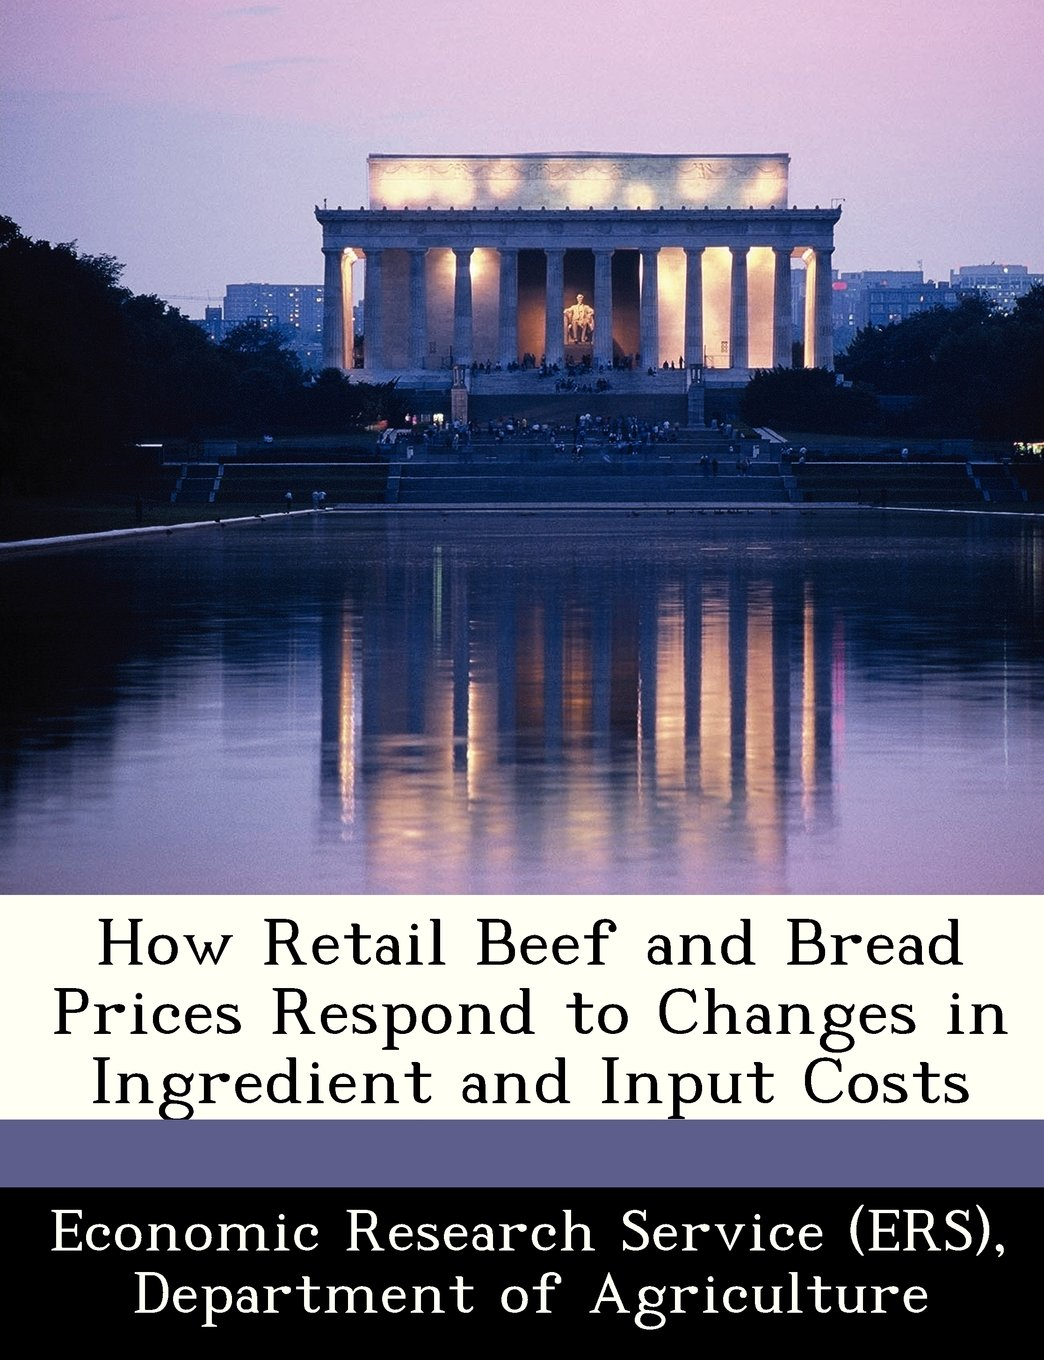 Download How Retail Beef and Bread Prices Respond to Changes in Ingredient and Input Costs PDF